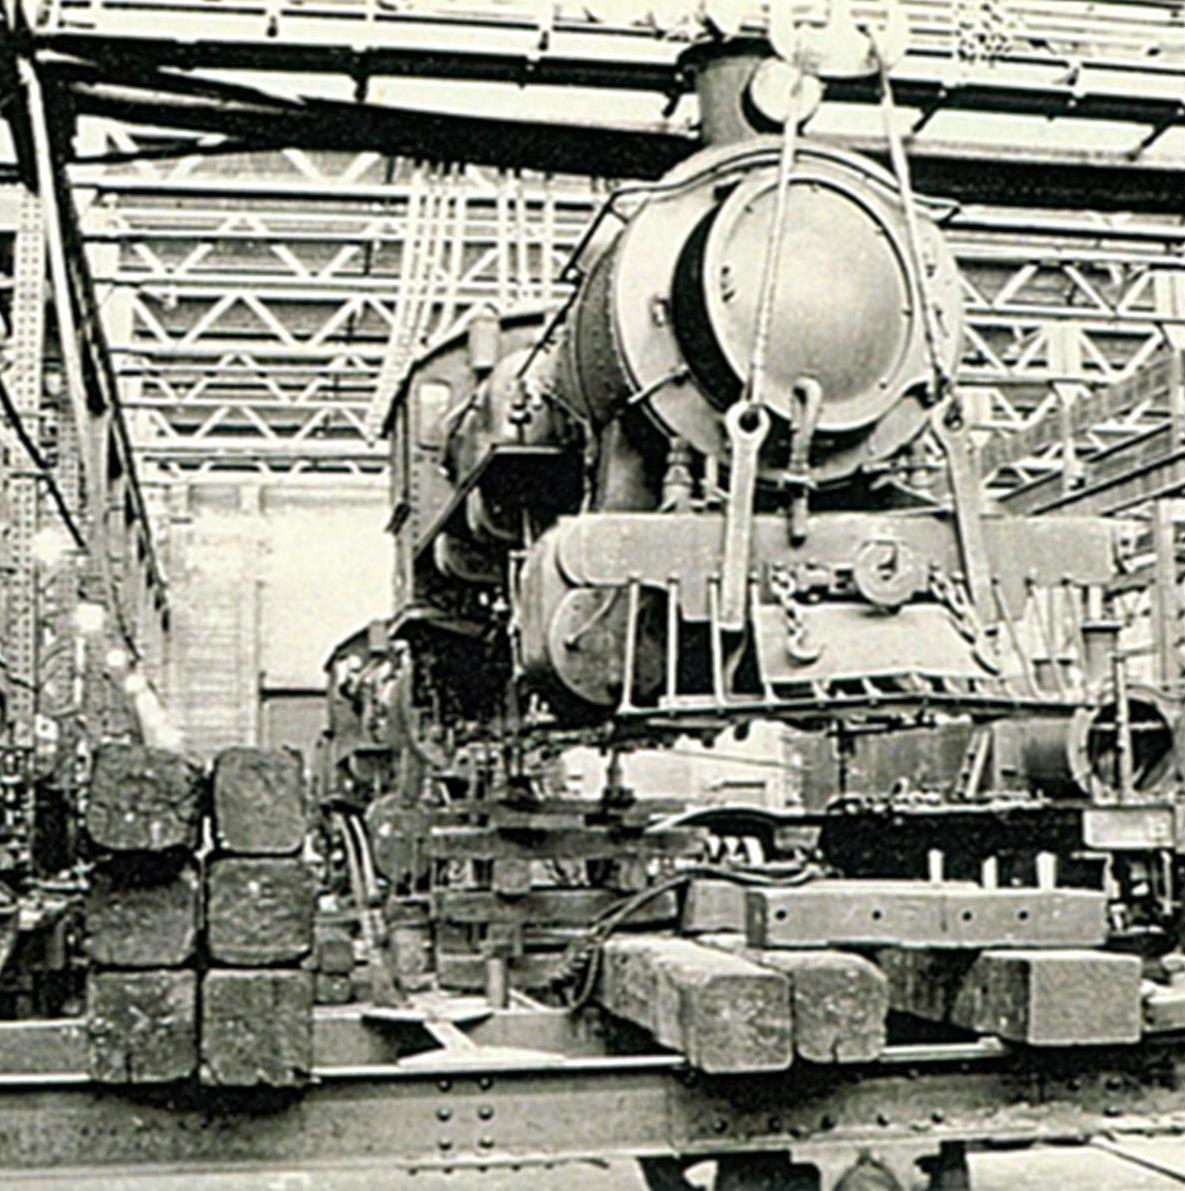 Explore the history of Midland - Look back with the Midland and Districts Historical Society Inc.The society will be displaying a large number of early photographs of Midland and the WA Government Railways Workshops (1904-1994).Society members will be on hand during the day to answer questions and impart their knowledge of the local area.11am - 2pmFREE